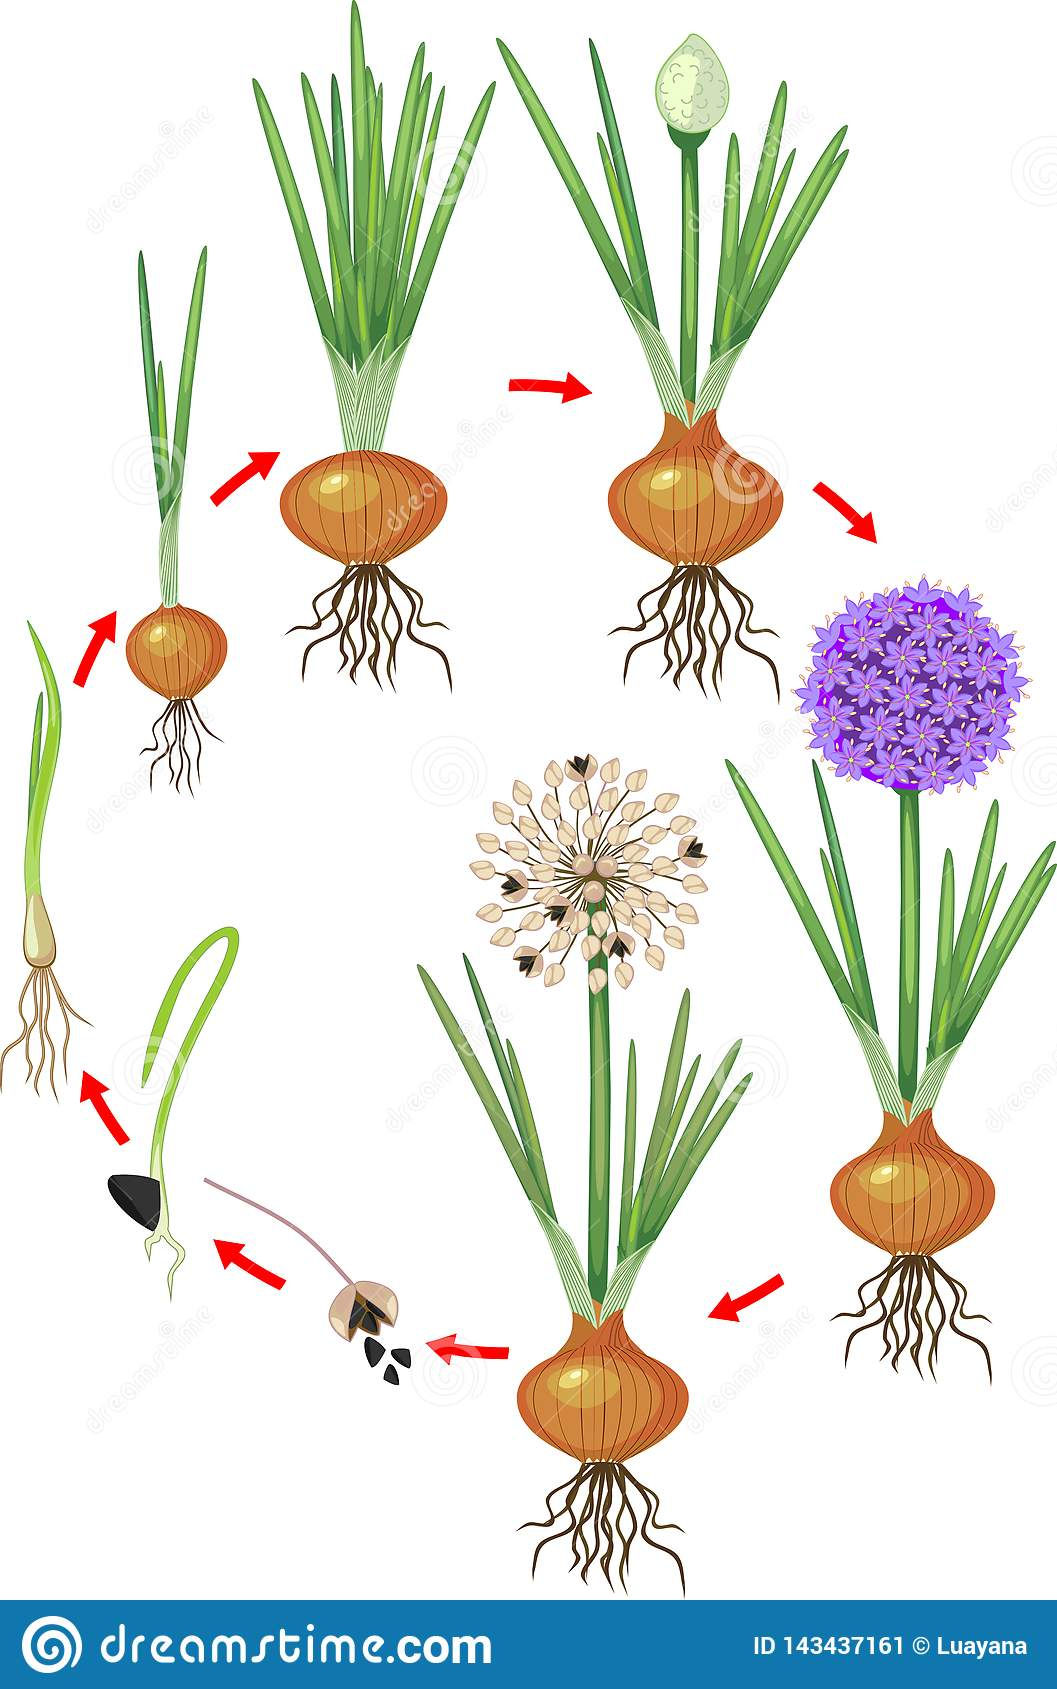 Life cycle of onion plant. stock vector. Illustration of ...